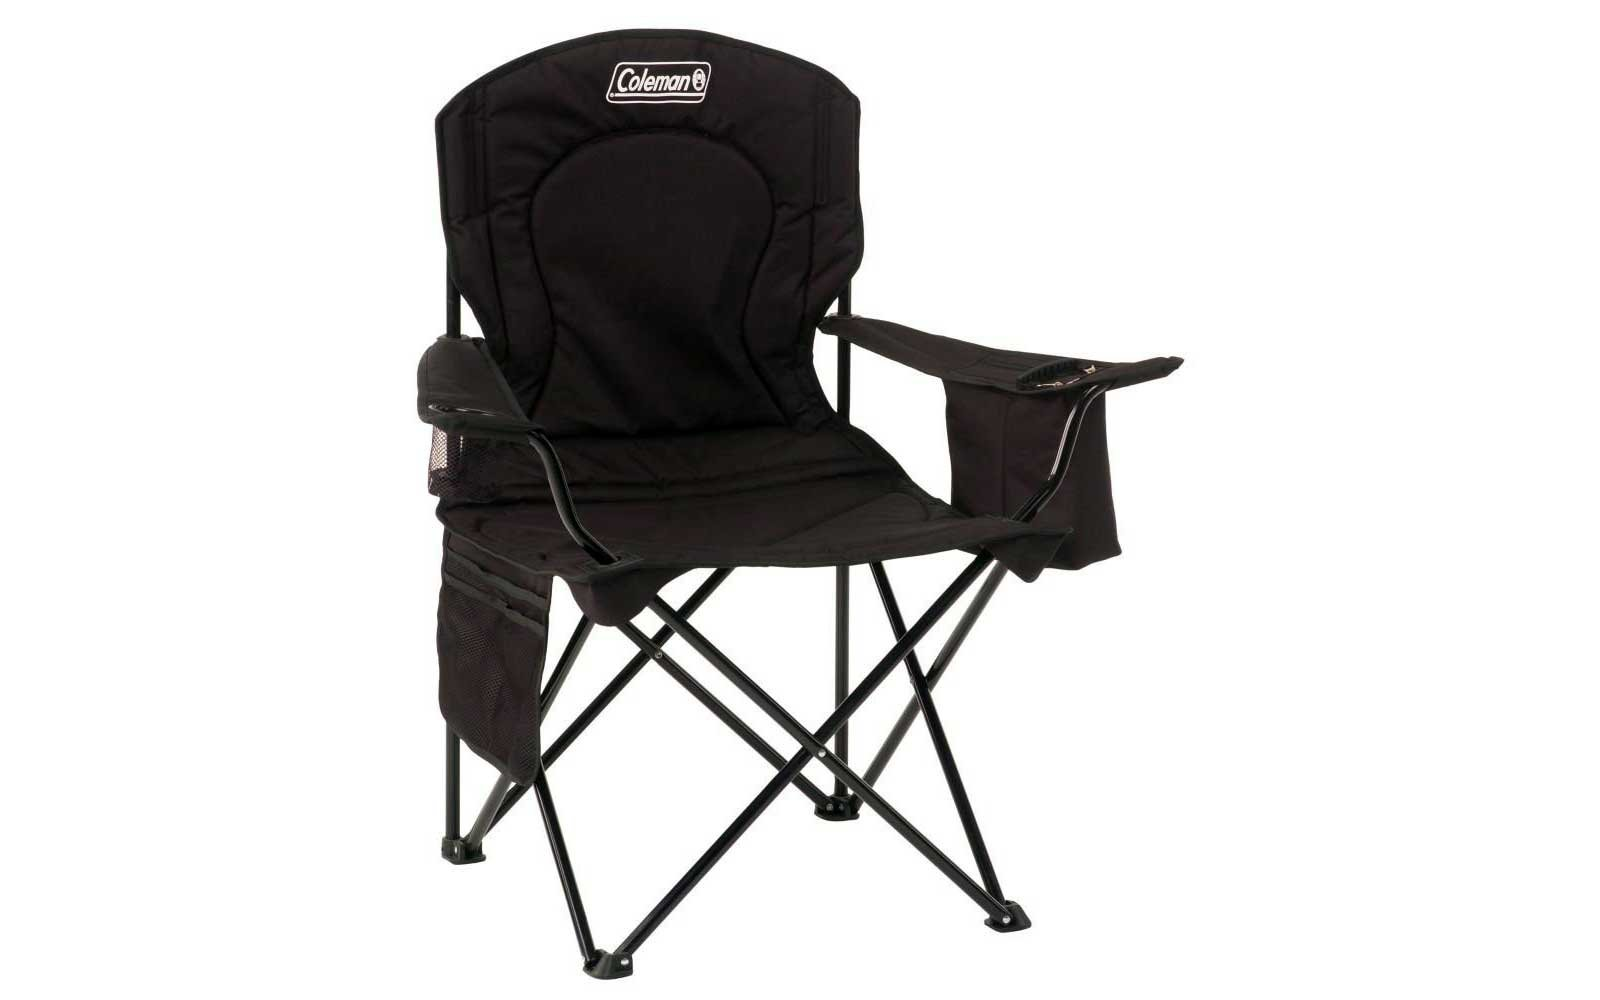 Coleman camping chair with cooler